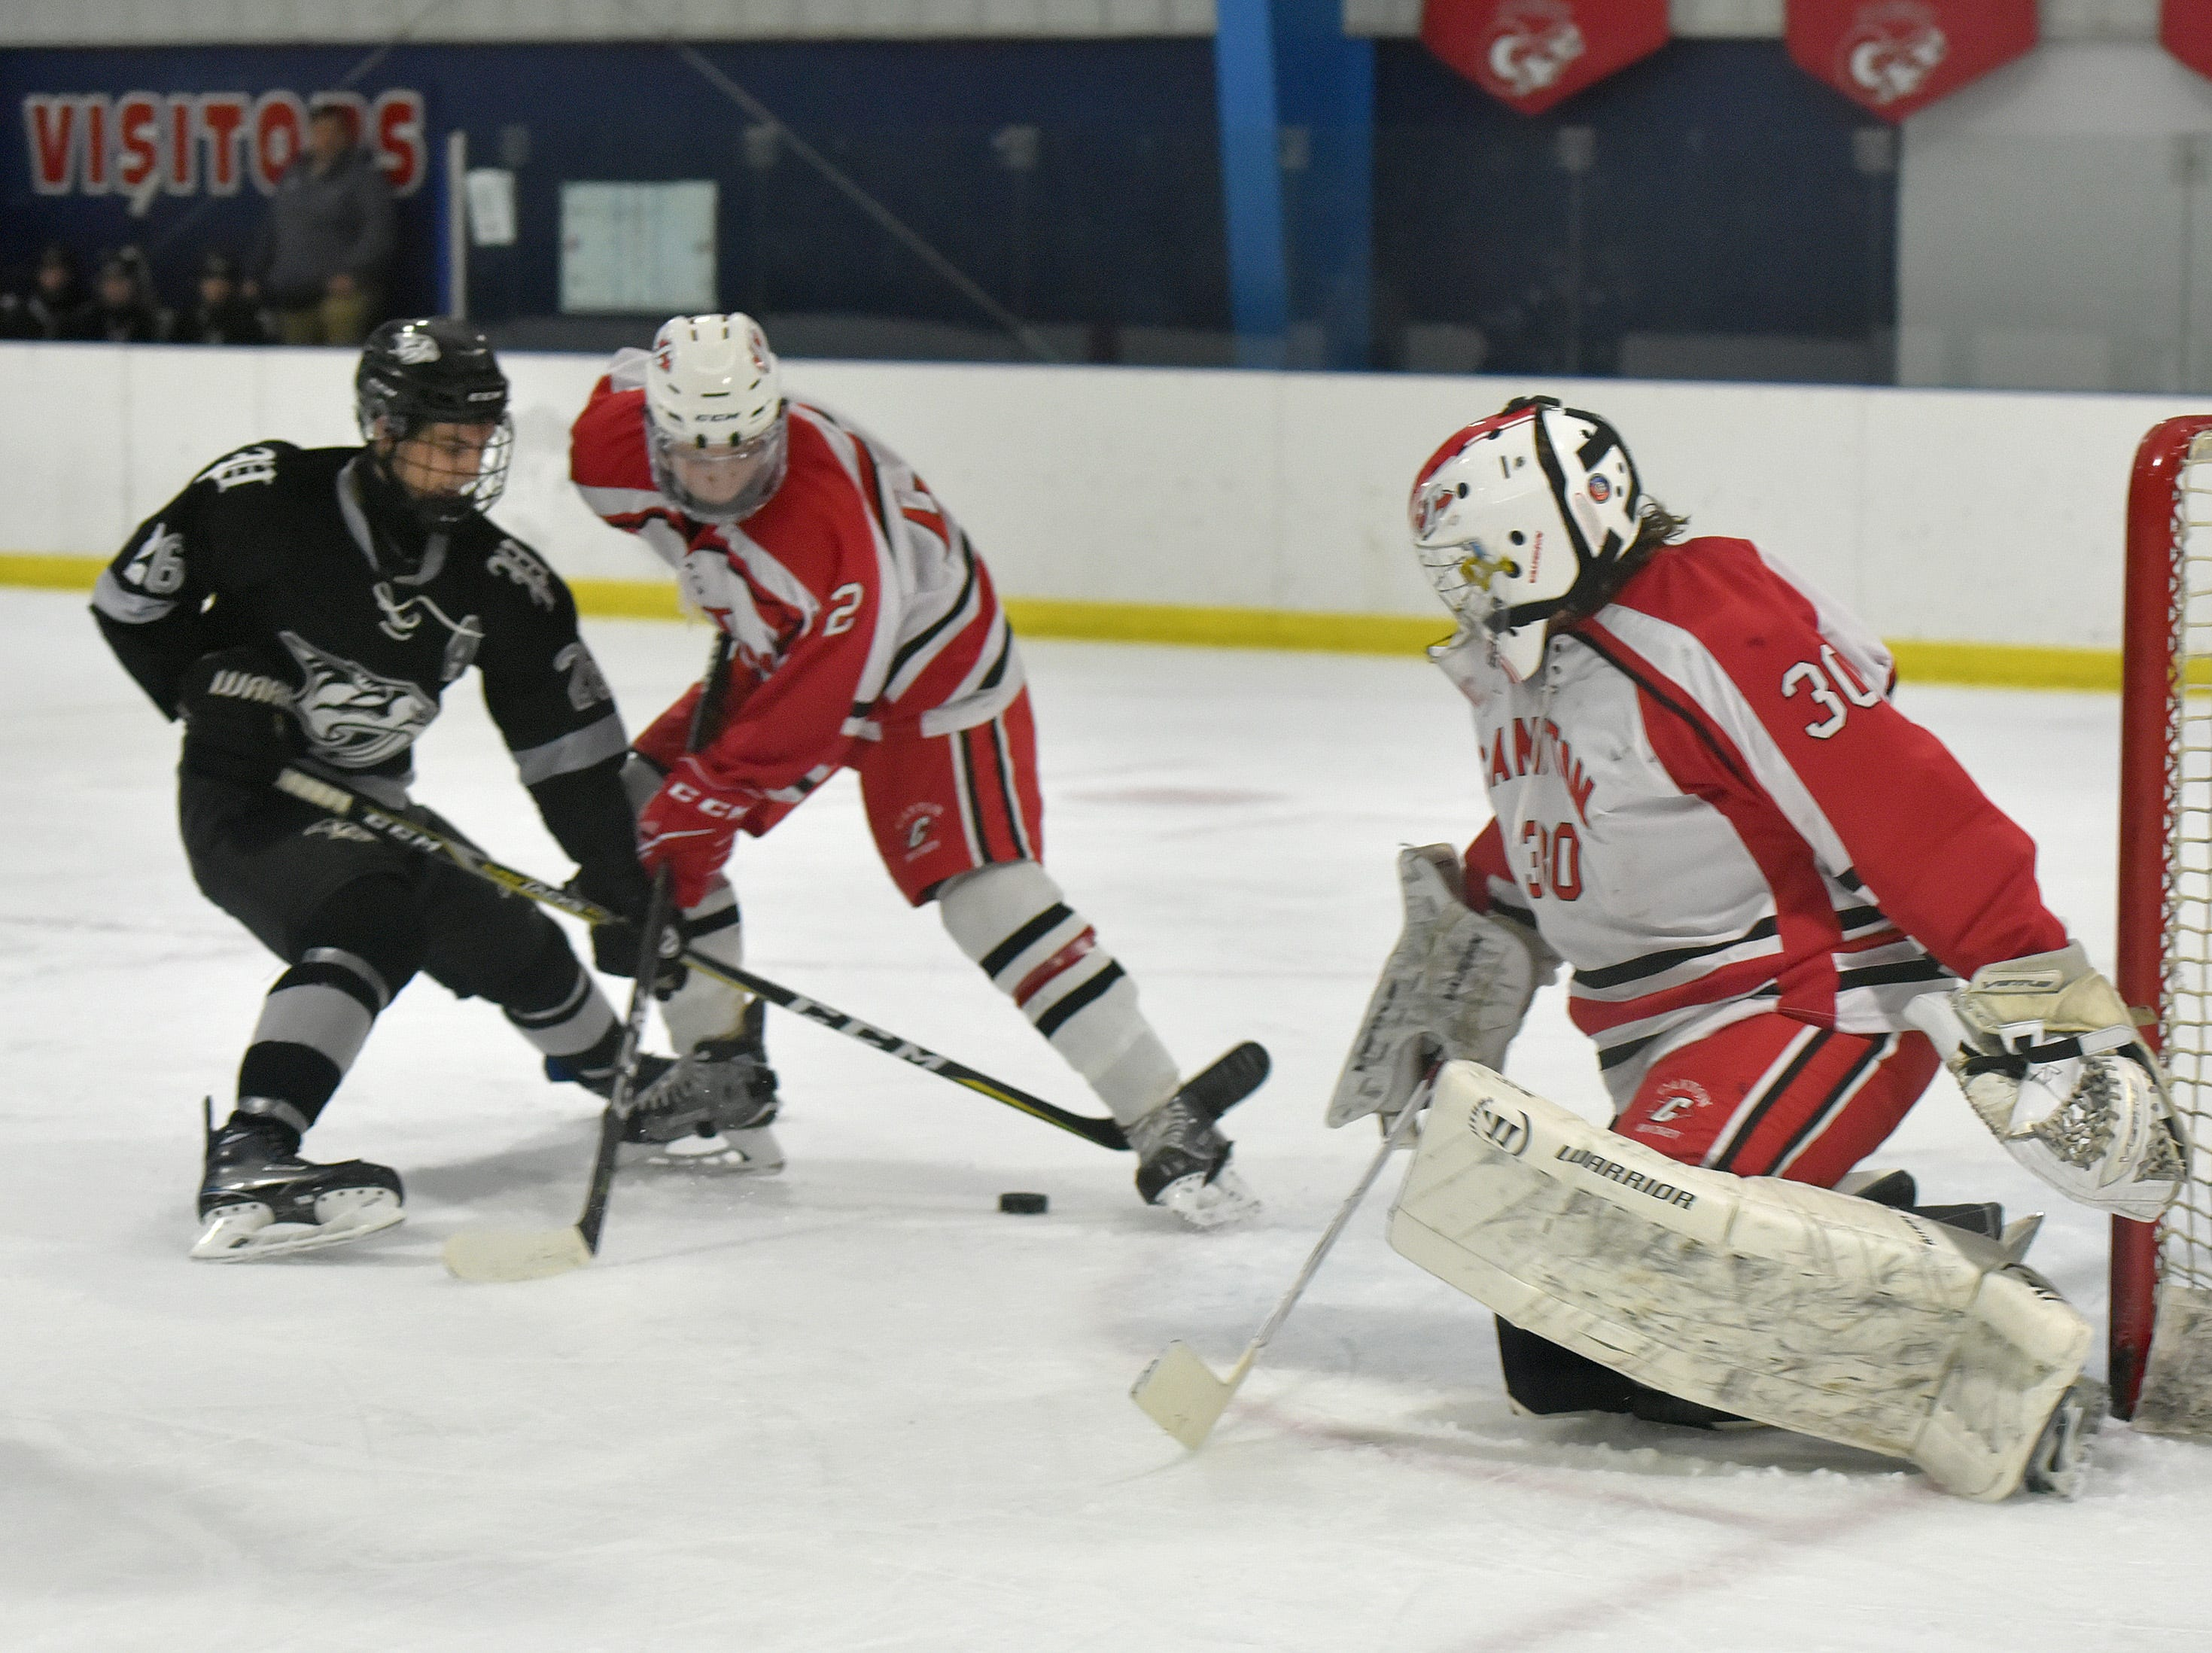 Plymouth's Jack VanDenBeurgeury skates to the net and shoots under pressure from Chief defender Tyler Laski (2), but Canton goalie Michael Renzi (30) makes the save.